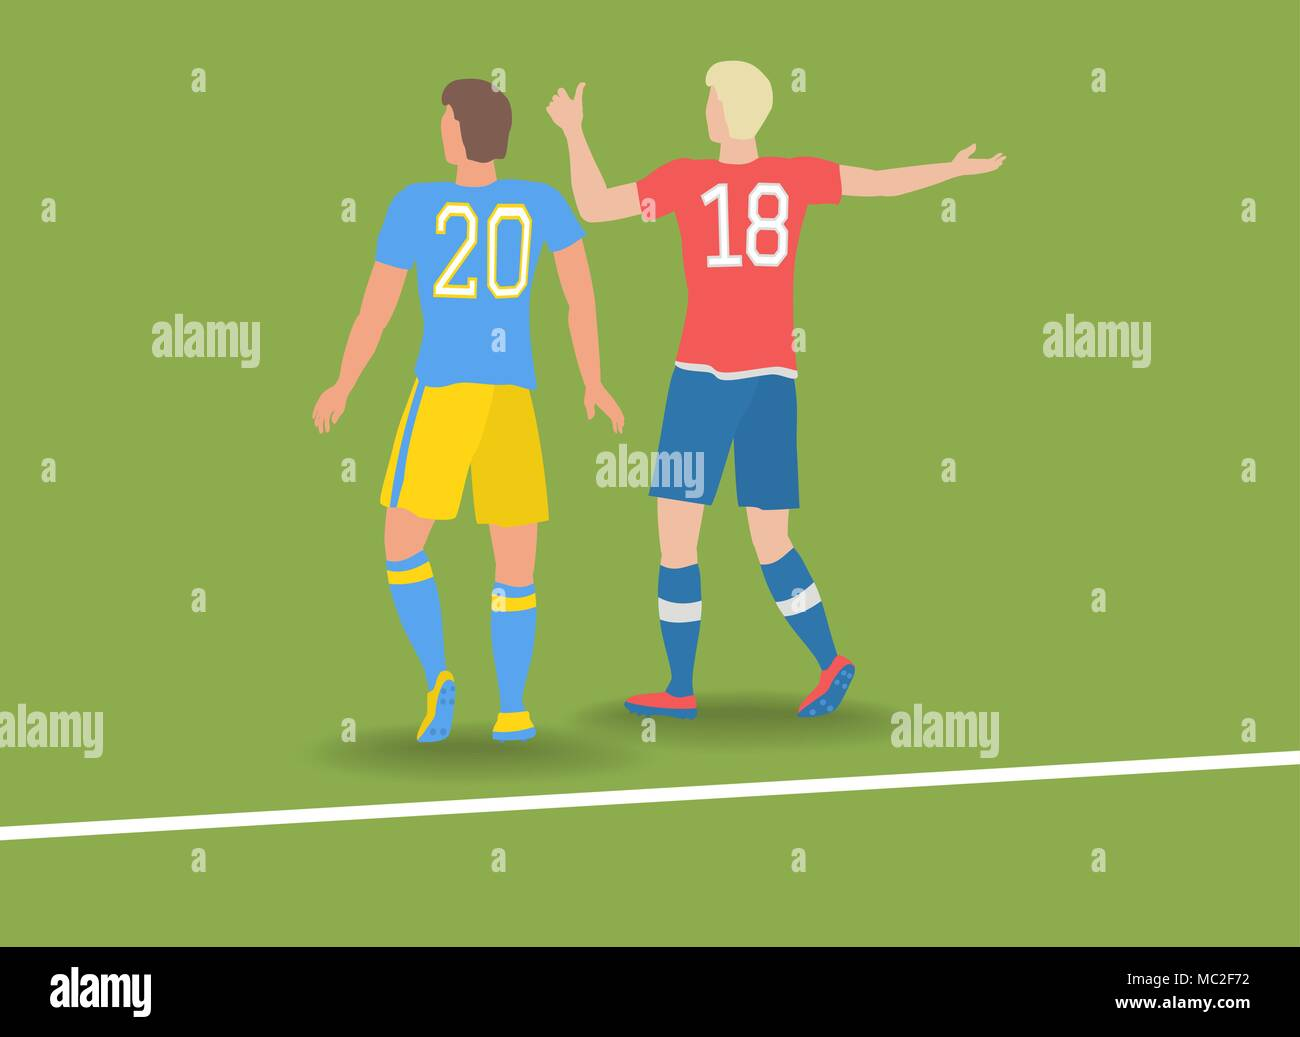 Two soccer players. - Stock Vector